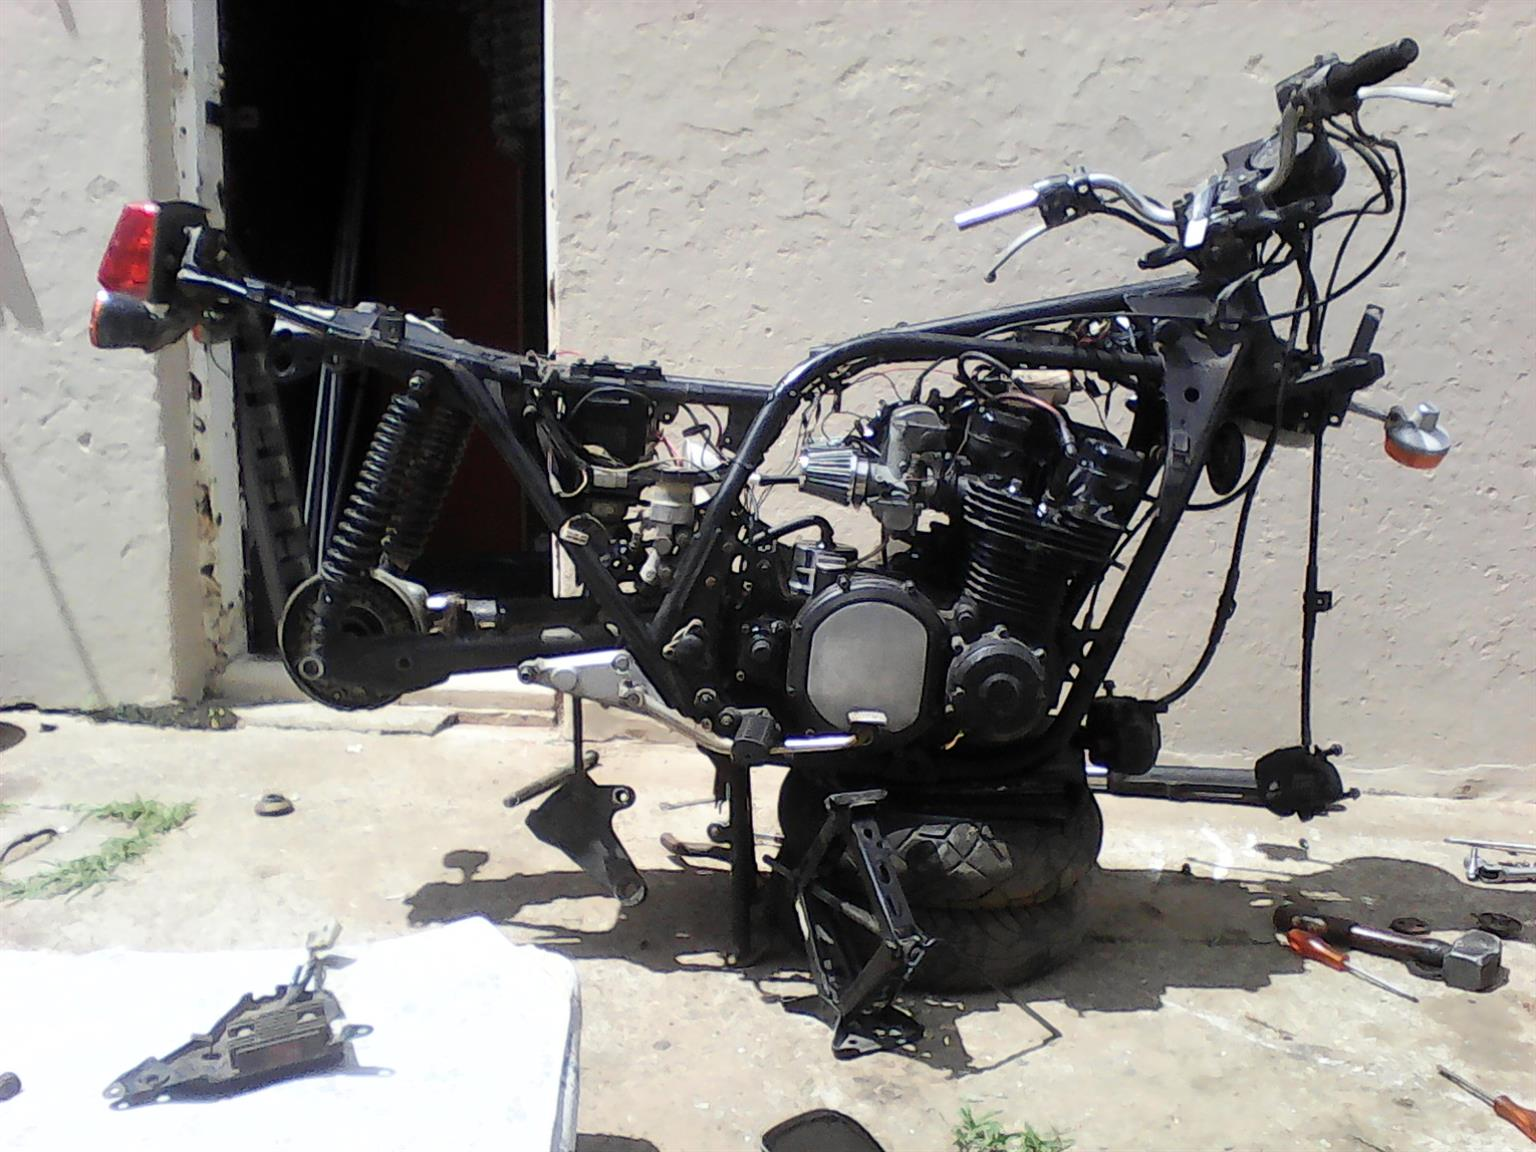 Qualified motorcycle technician;40years experience;specialize in old school bikes;all Chinese a quads;any electrical work undertaken west rand